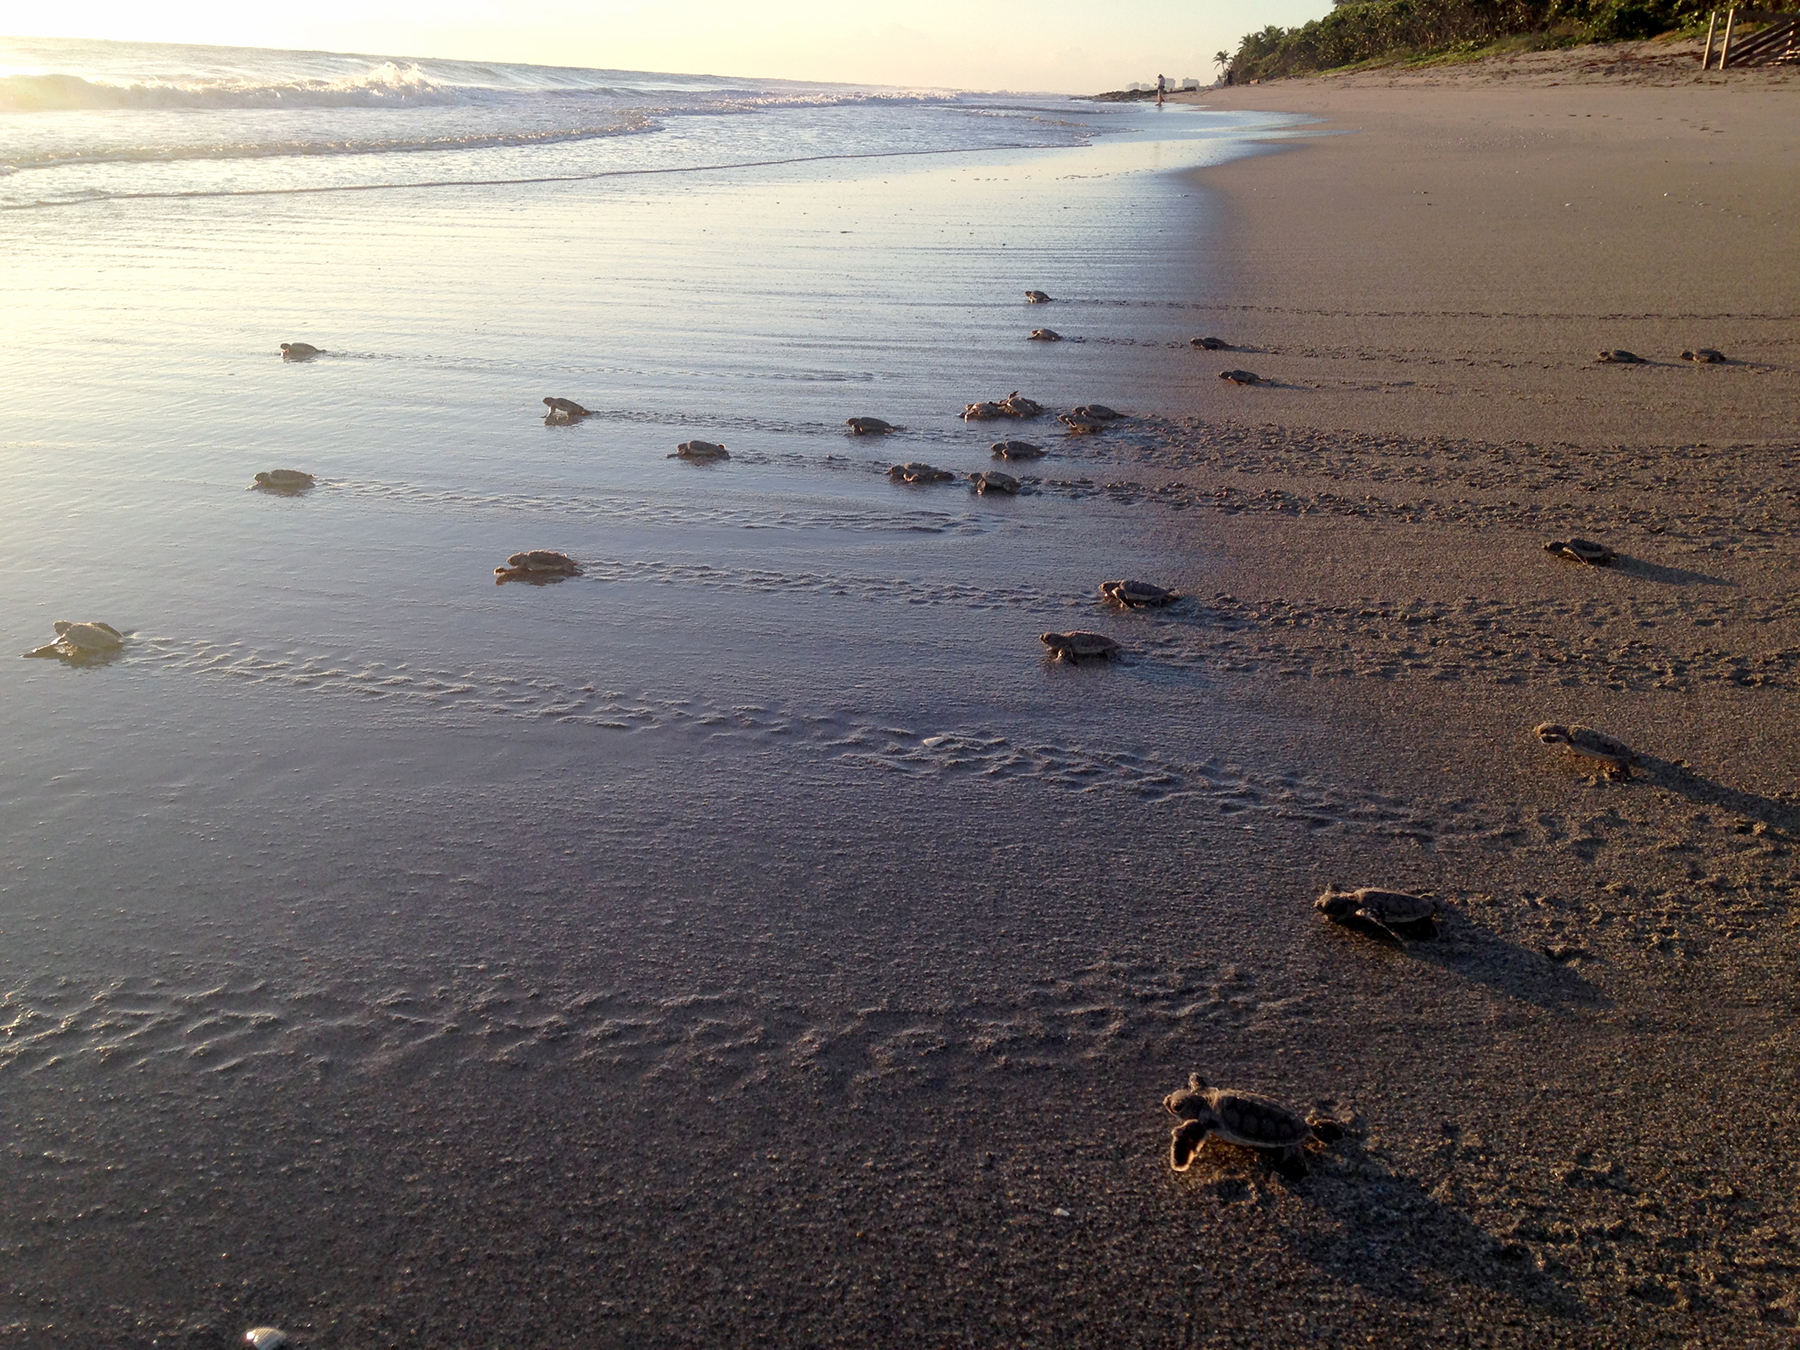 Spot And Learn About Turtle Hatchlings at Loggerhead Marinelife Center's New Biologist Beach Walk Series